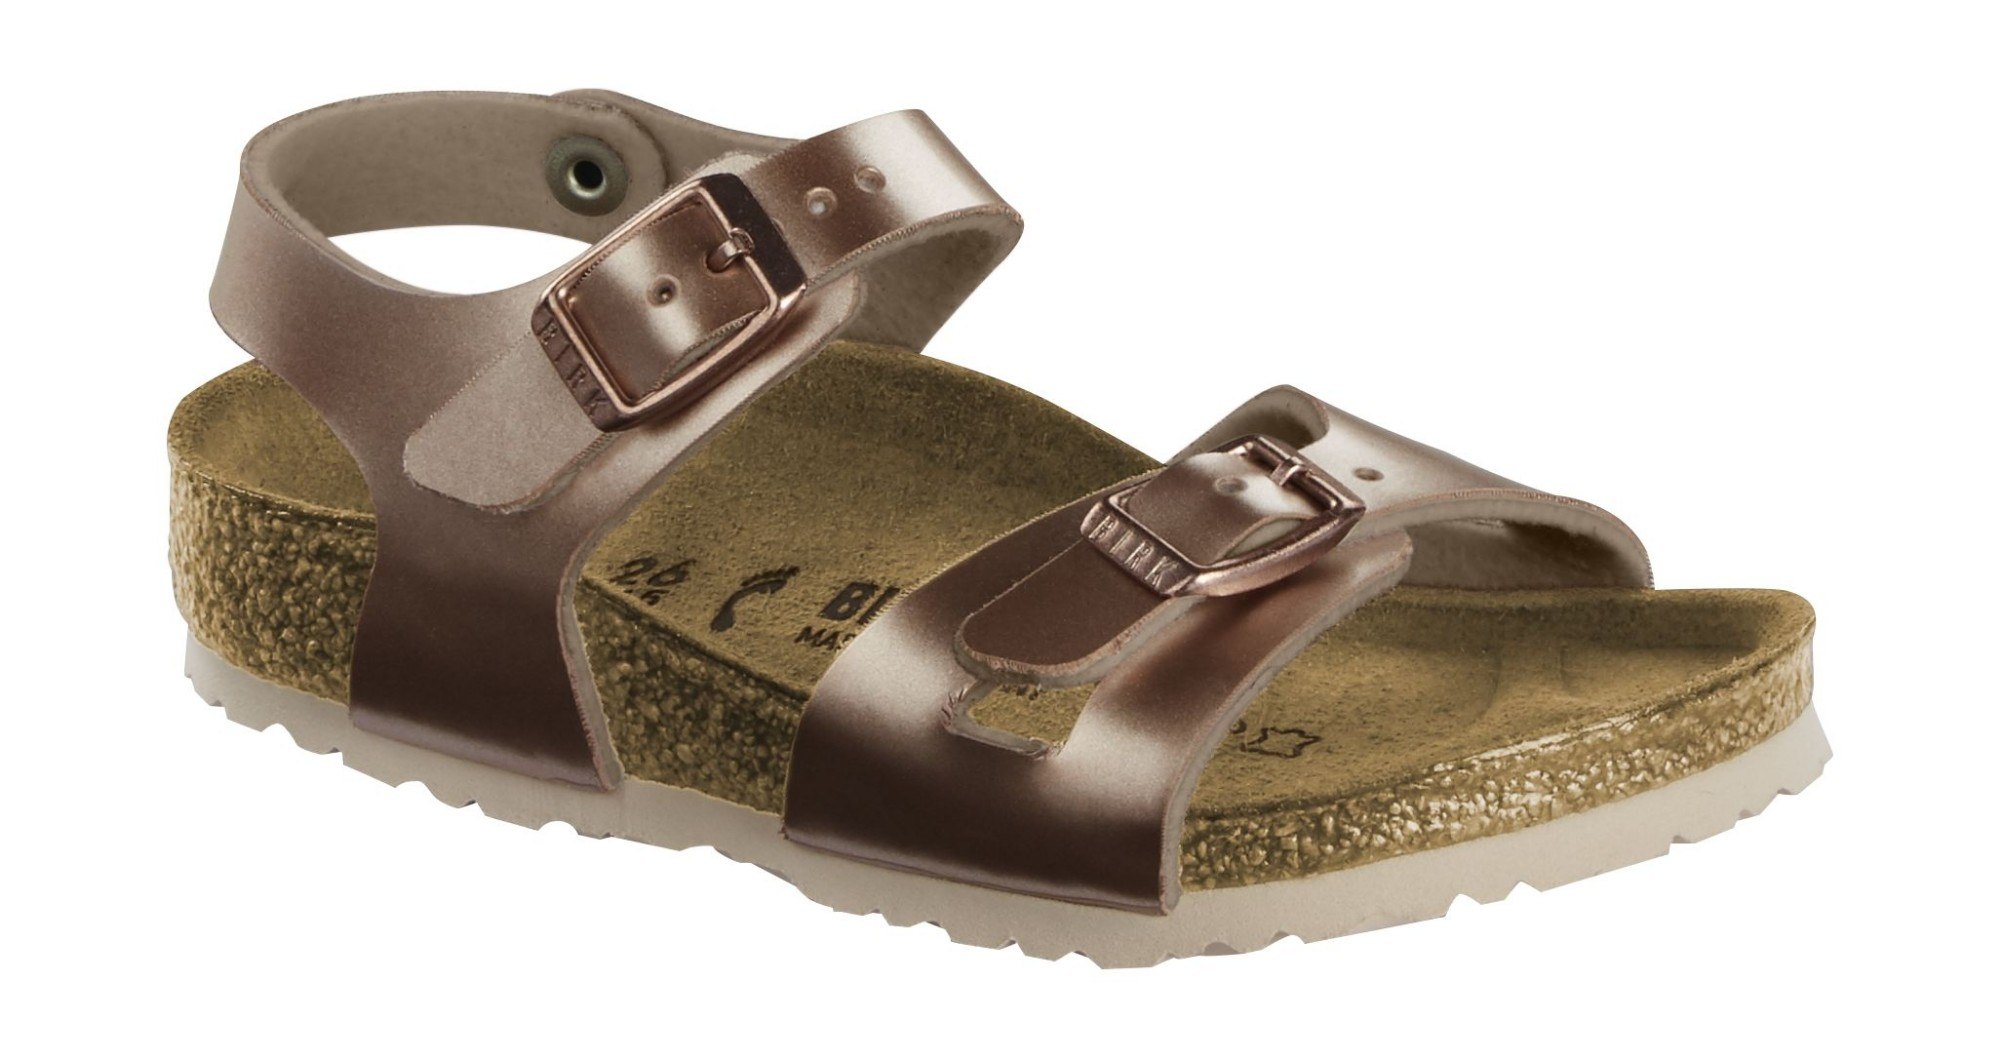 Birkenstock Rio Kids Electric Metallic Copper 27